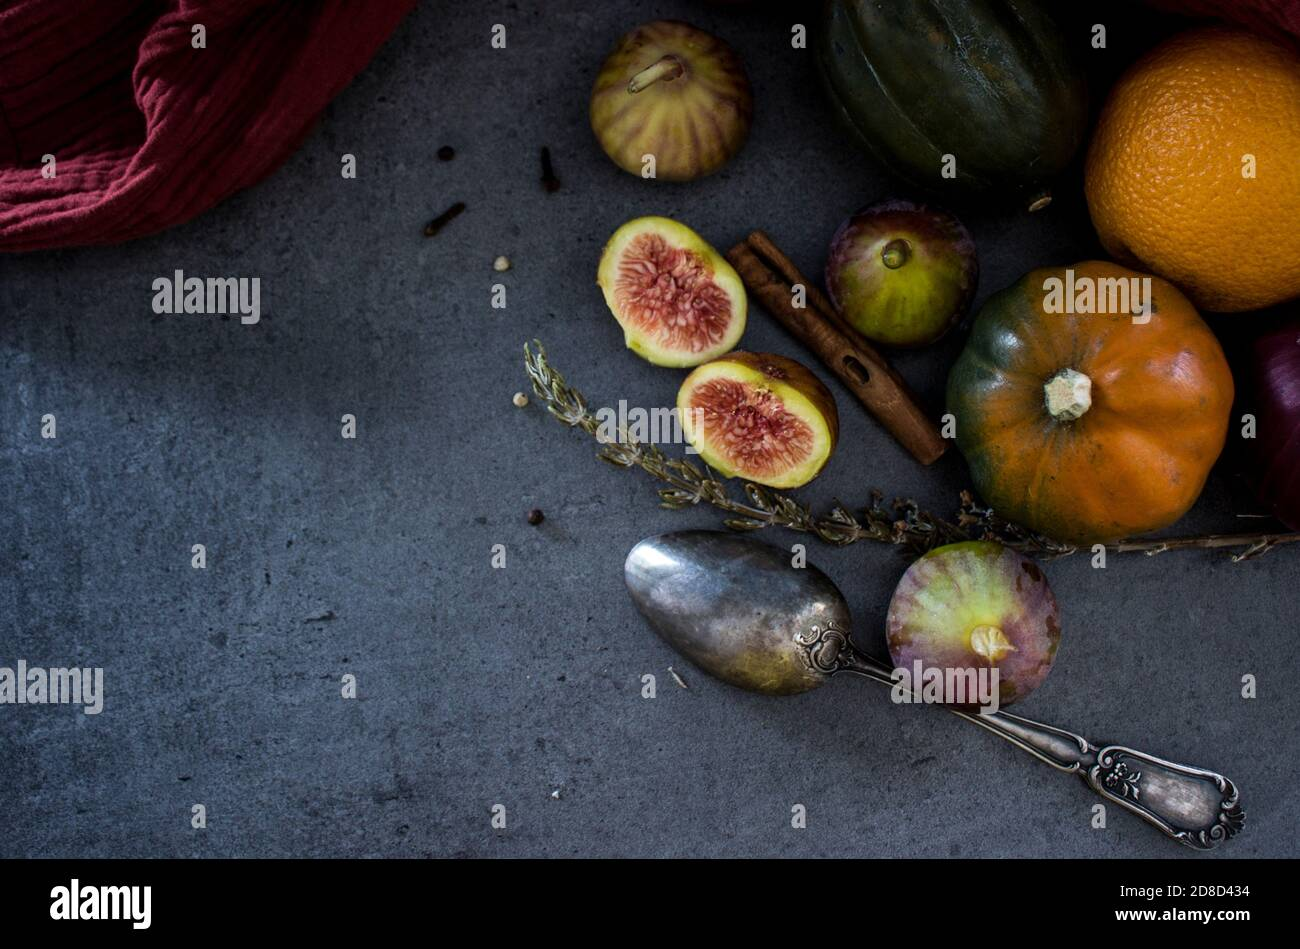 Fresh fruits and vegetables on a table. Gem squash, plums, figs and silver spoon on grey background. Top view photo of autumn harvest. Stock Photo